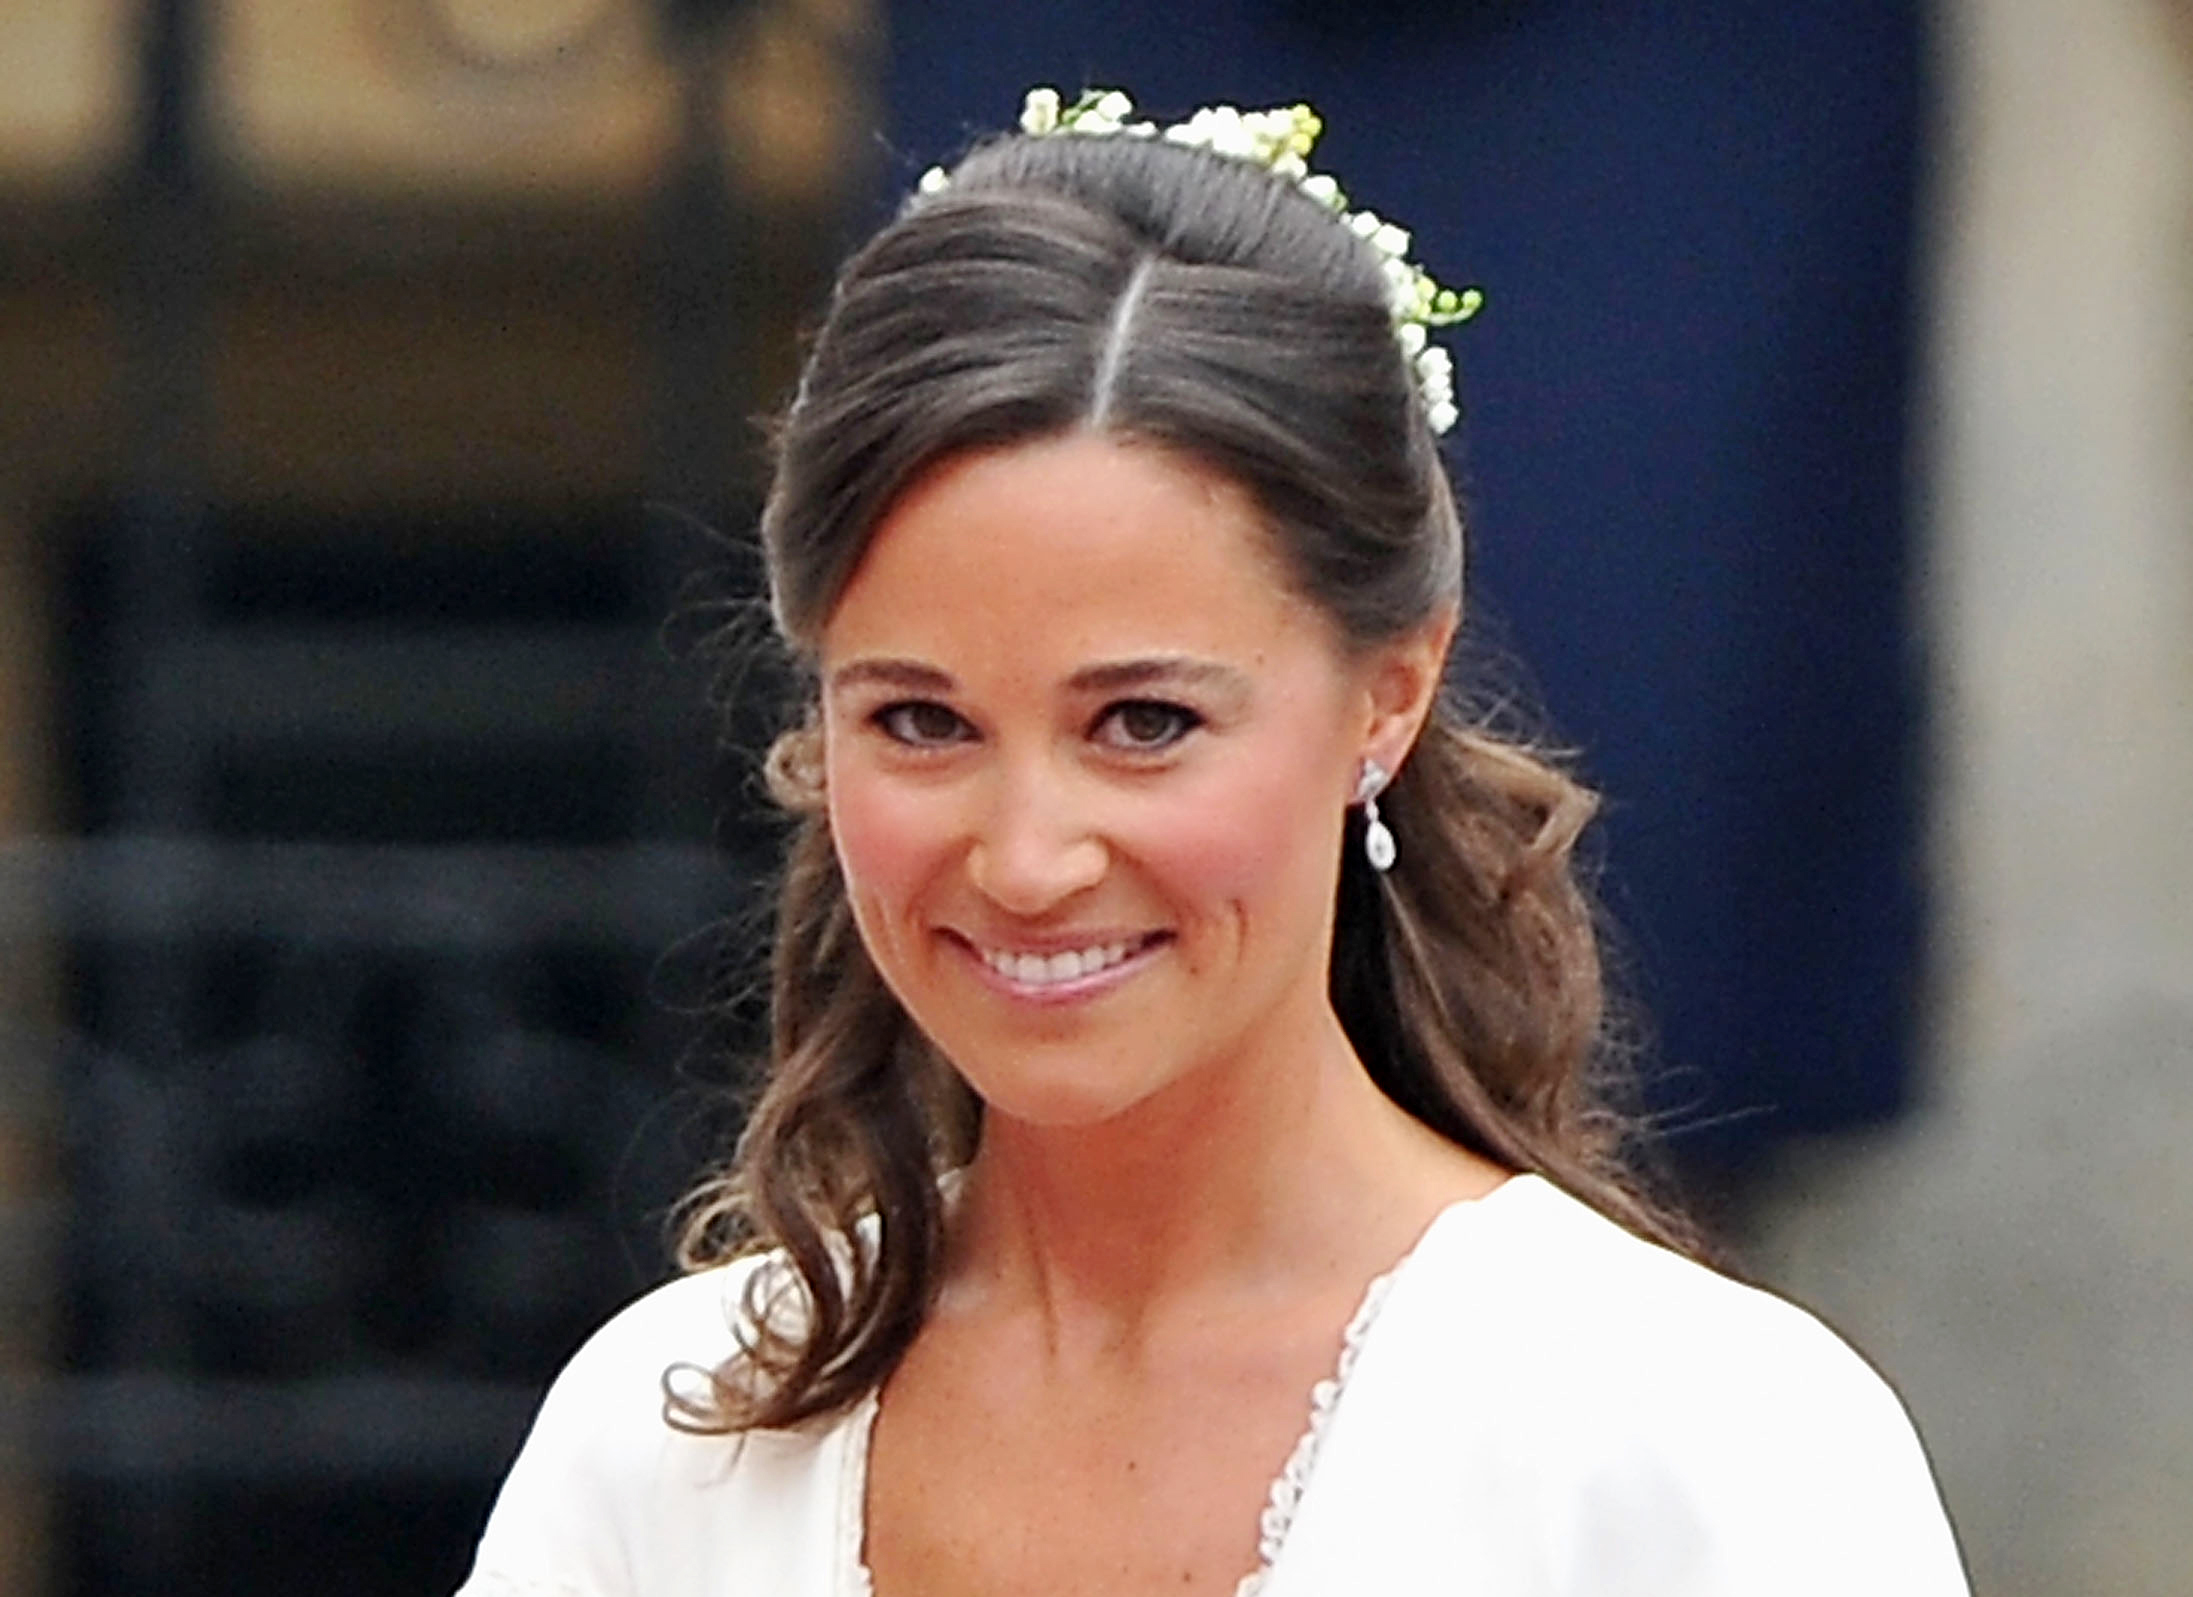 Fullsize Of Pippa Middleton Engagement Ring